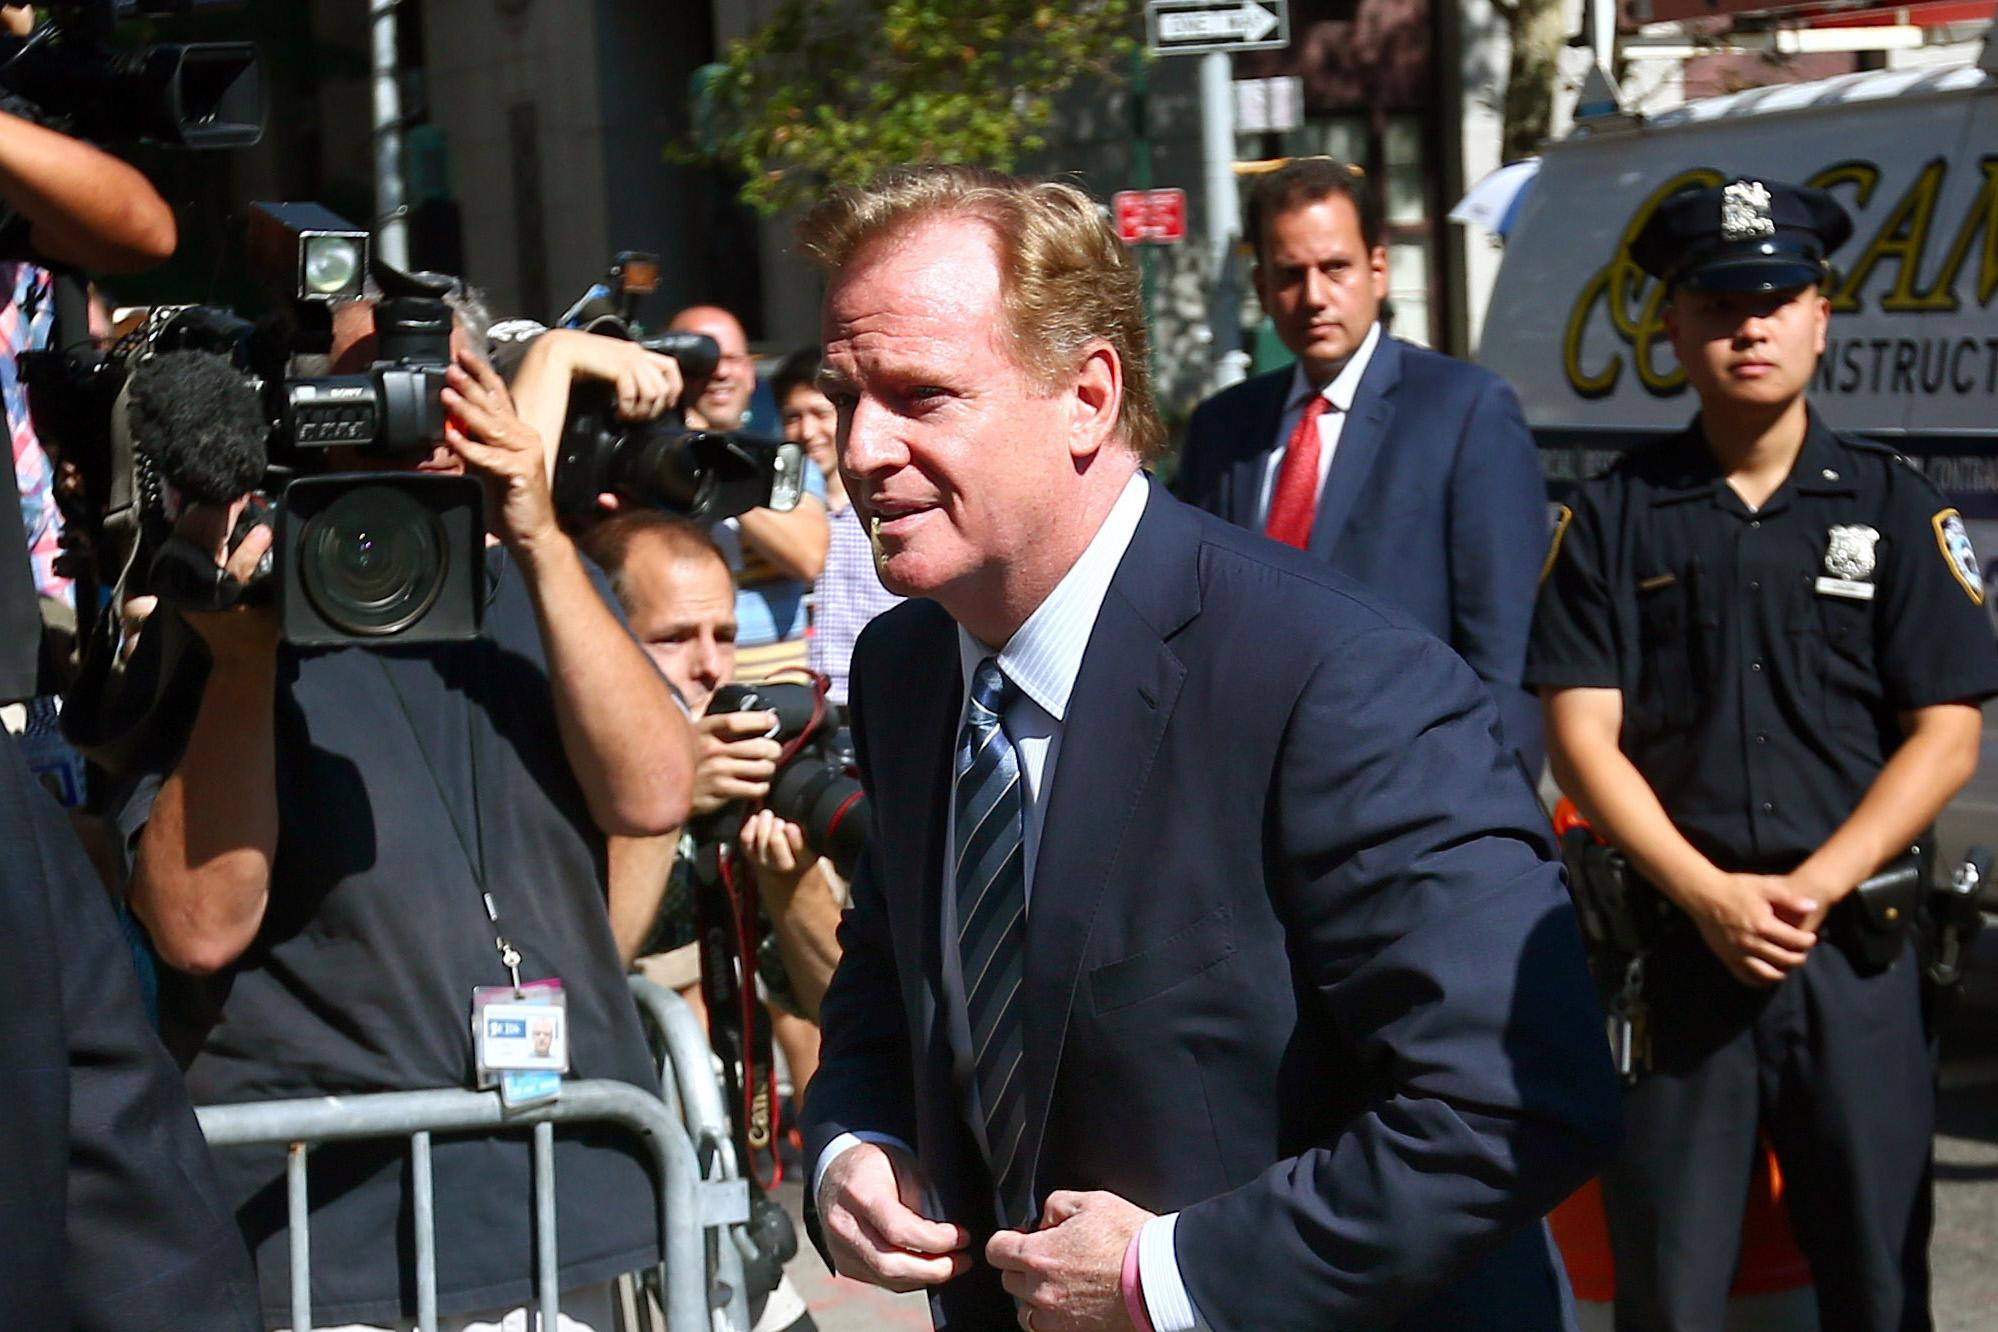 NFL commissioner Goodell issues statement on Brady ruling